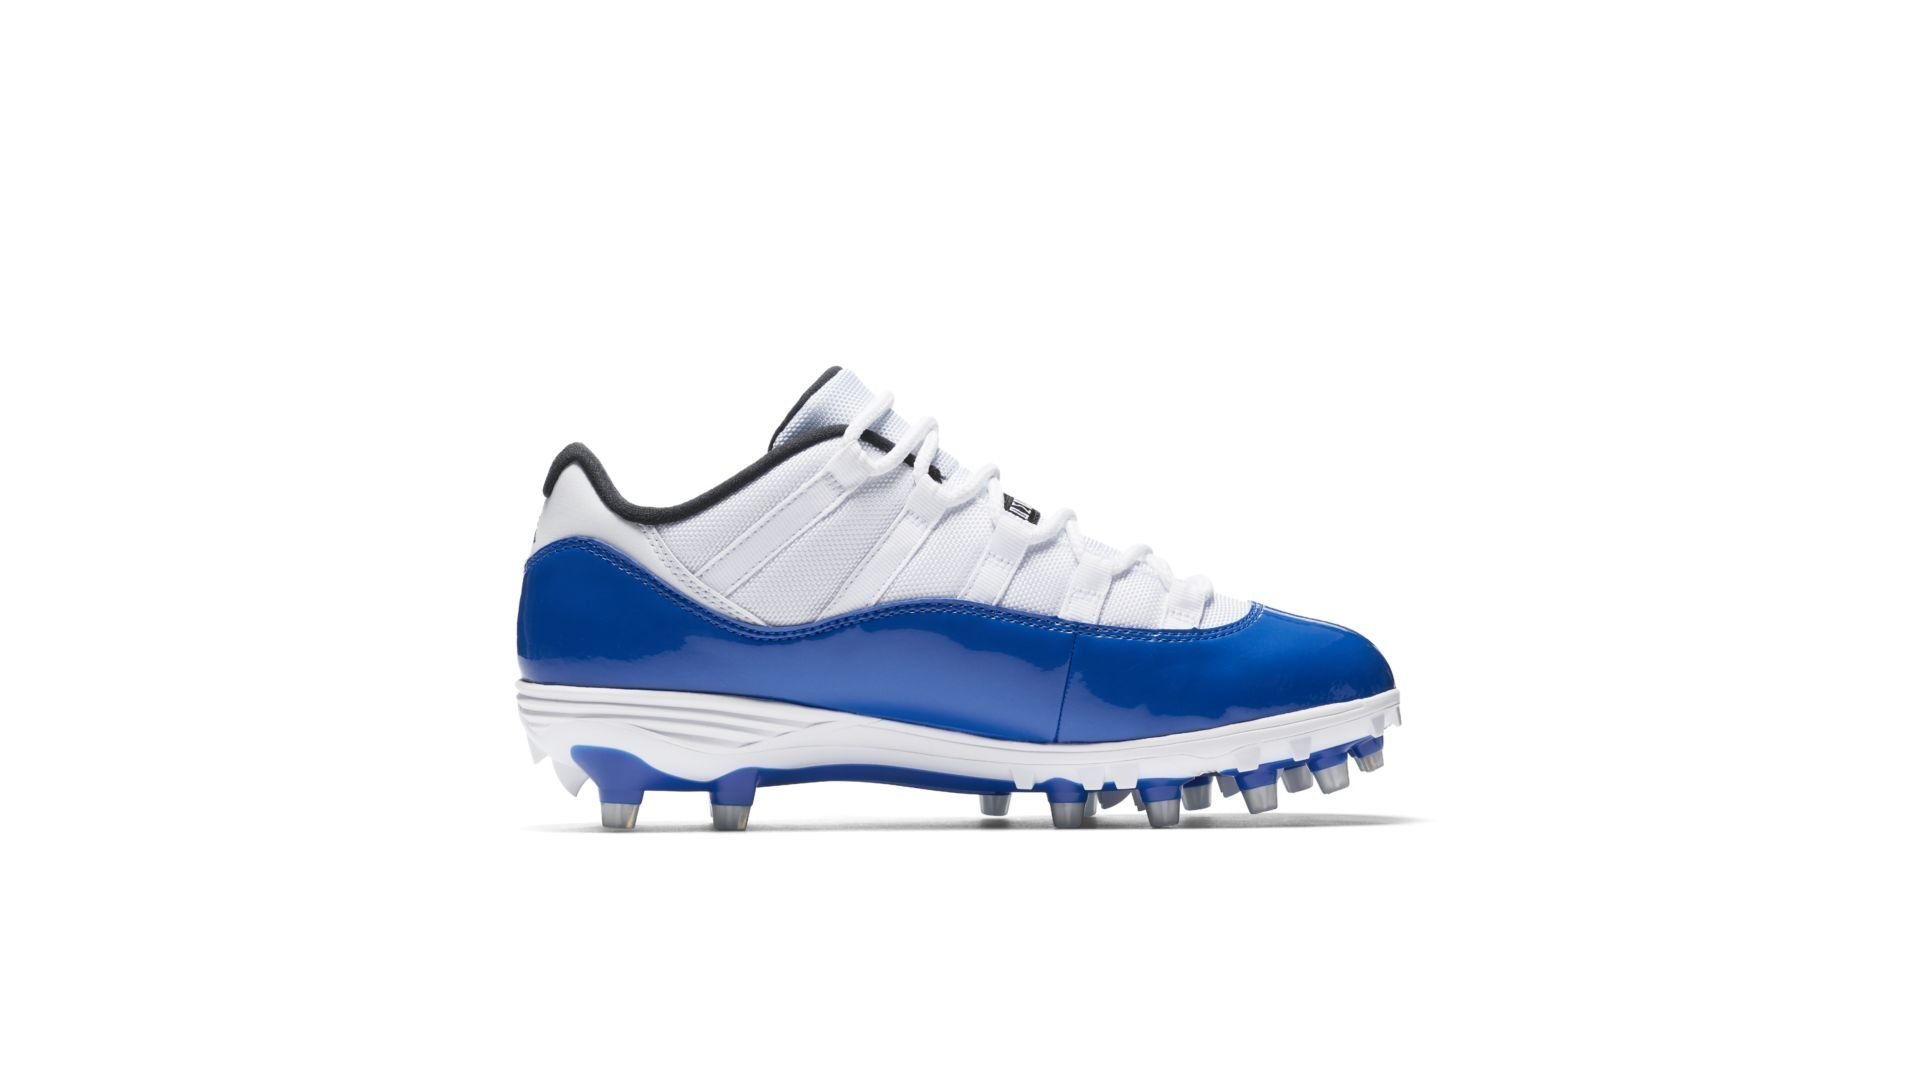 Jordan 11 Retro Low Cleat White Royal (AO1560-107)